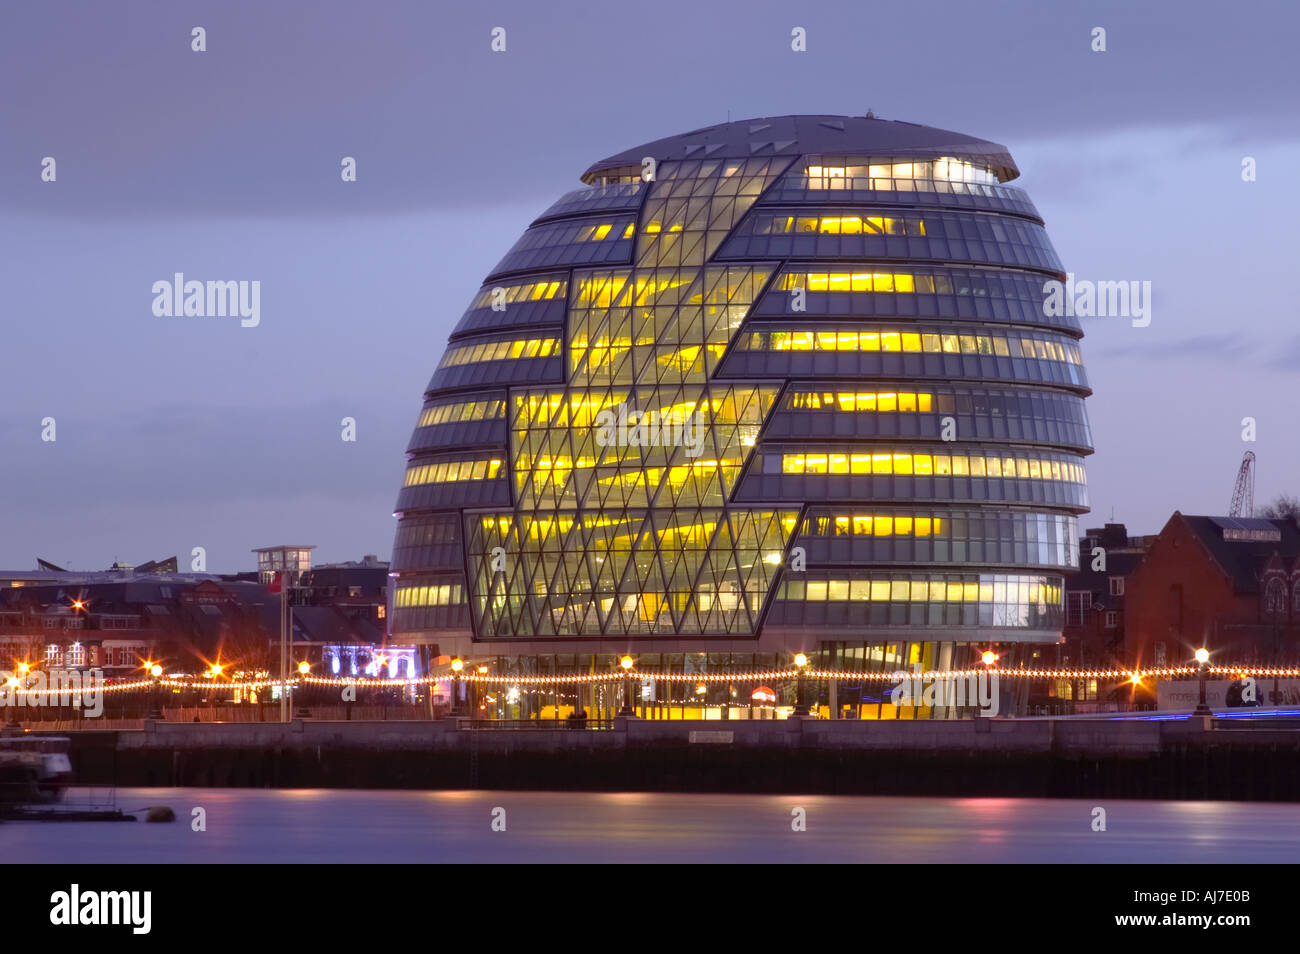 day GLA City Hall designed by Foster Partners in London England Britain United Kingdom UK - Stock Image